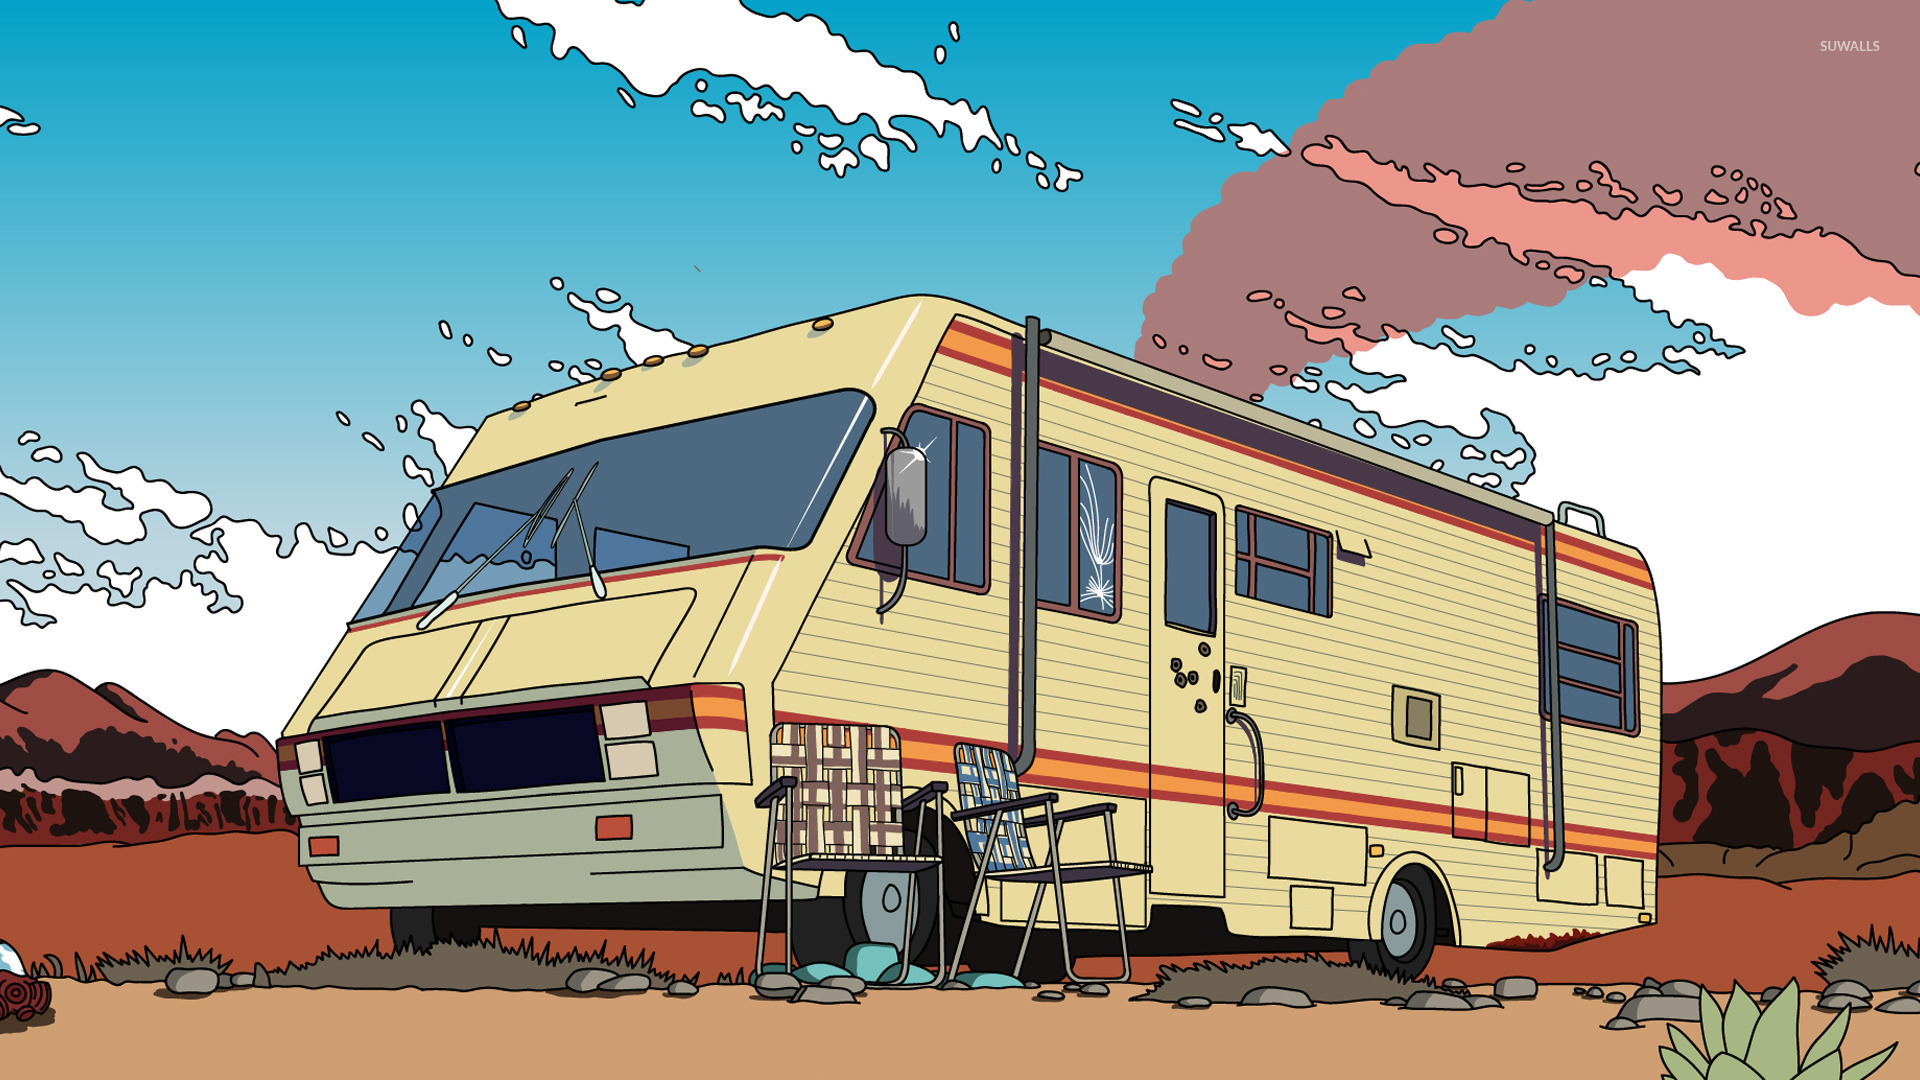 Recreational Vehicle Wallpaper Vector Wallpapers 16212 HD Wallpapers Download Free Images Wallpaper [1000image.com]